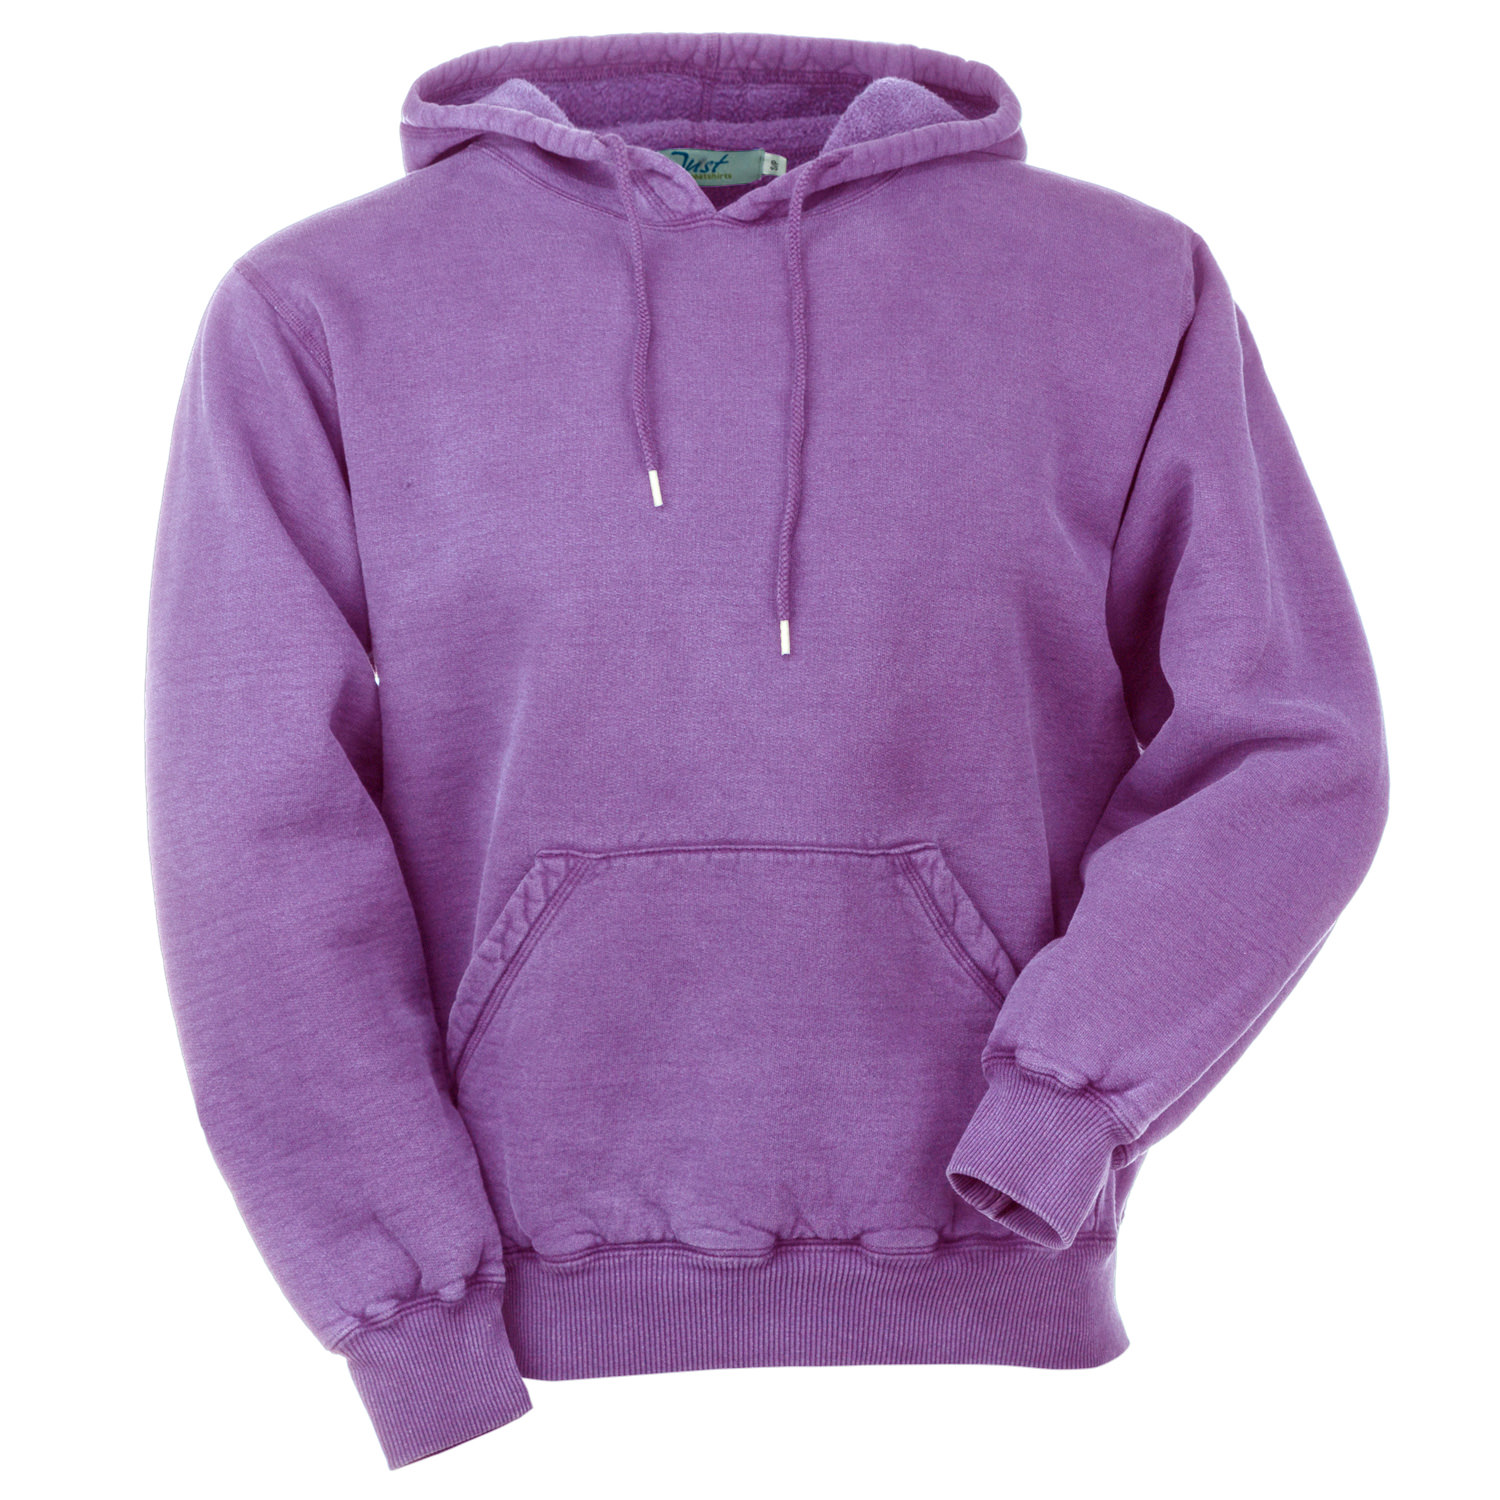 Hooded Pullover Plum Sand 100% Cotton